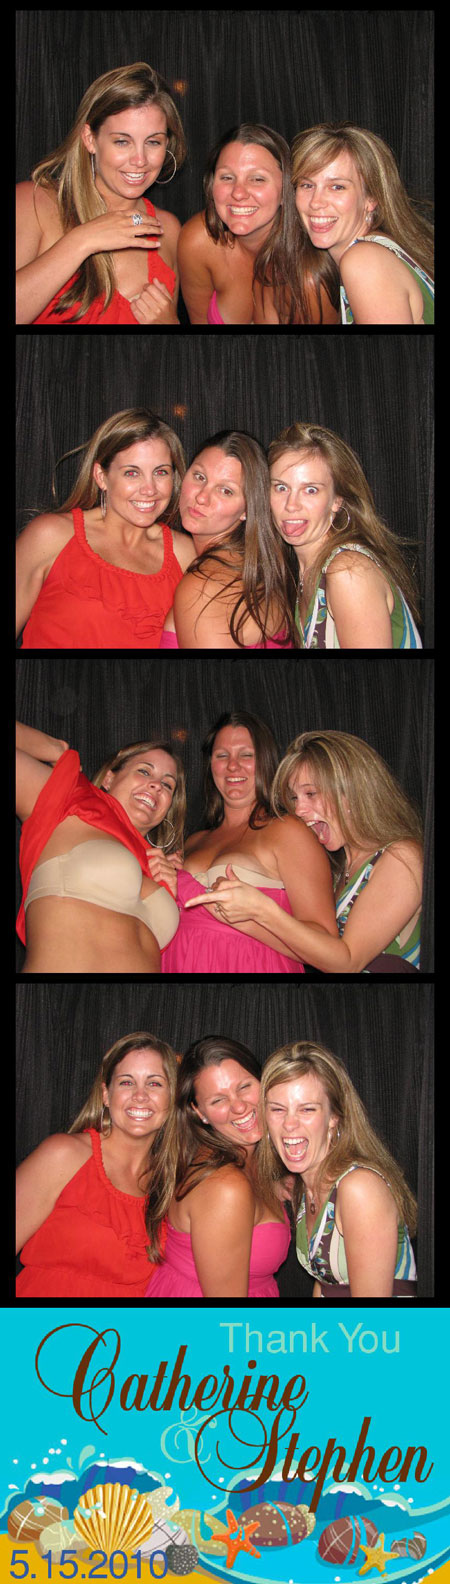 Photo Booth Fun – Weddings and other Events | Daily Girls @ Female Update